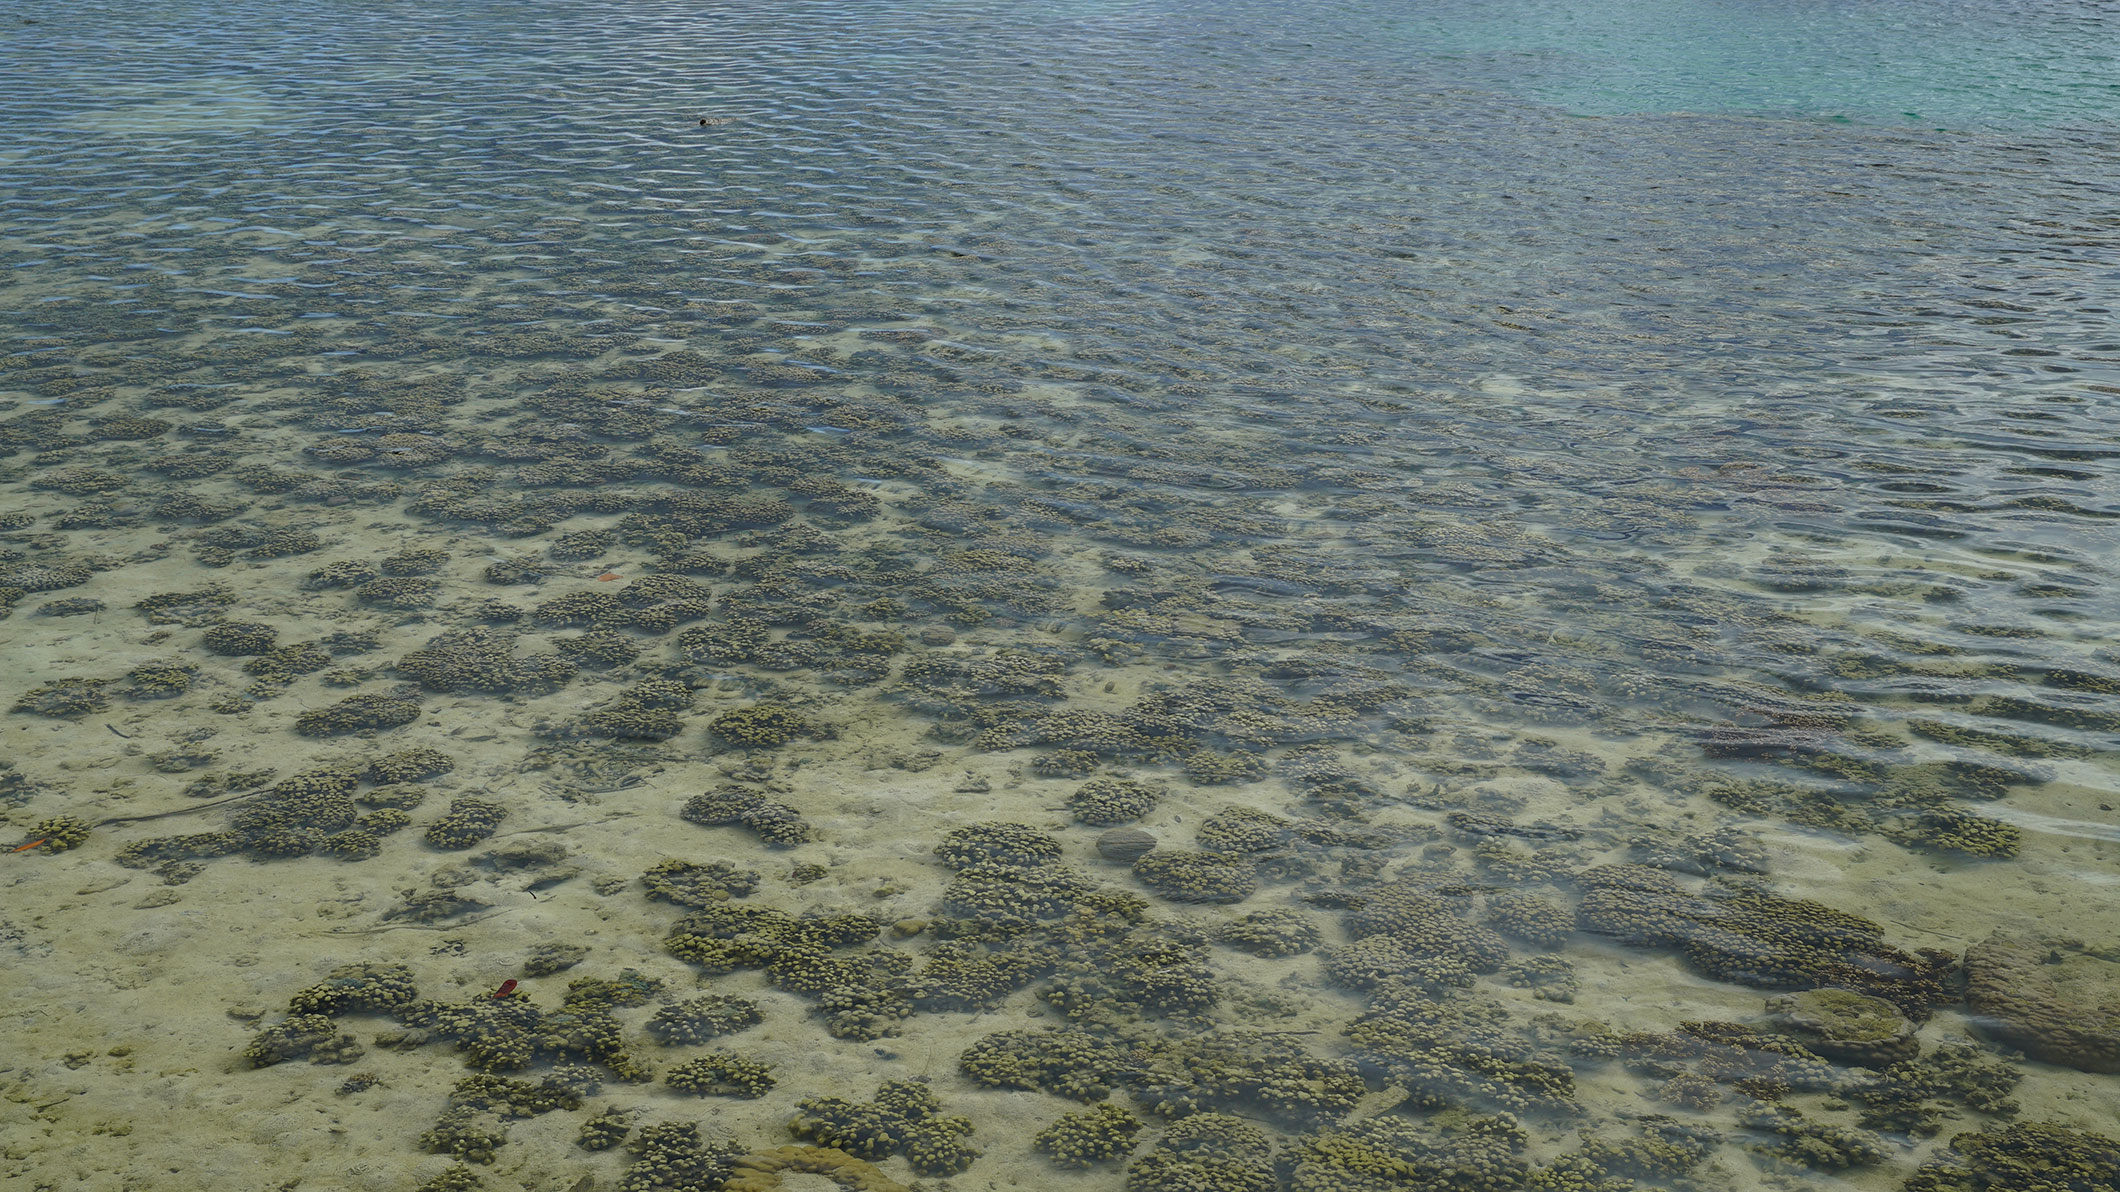 One of the Kaneohe Bay reefs studied by CORAL.